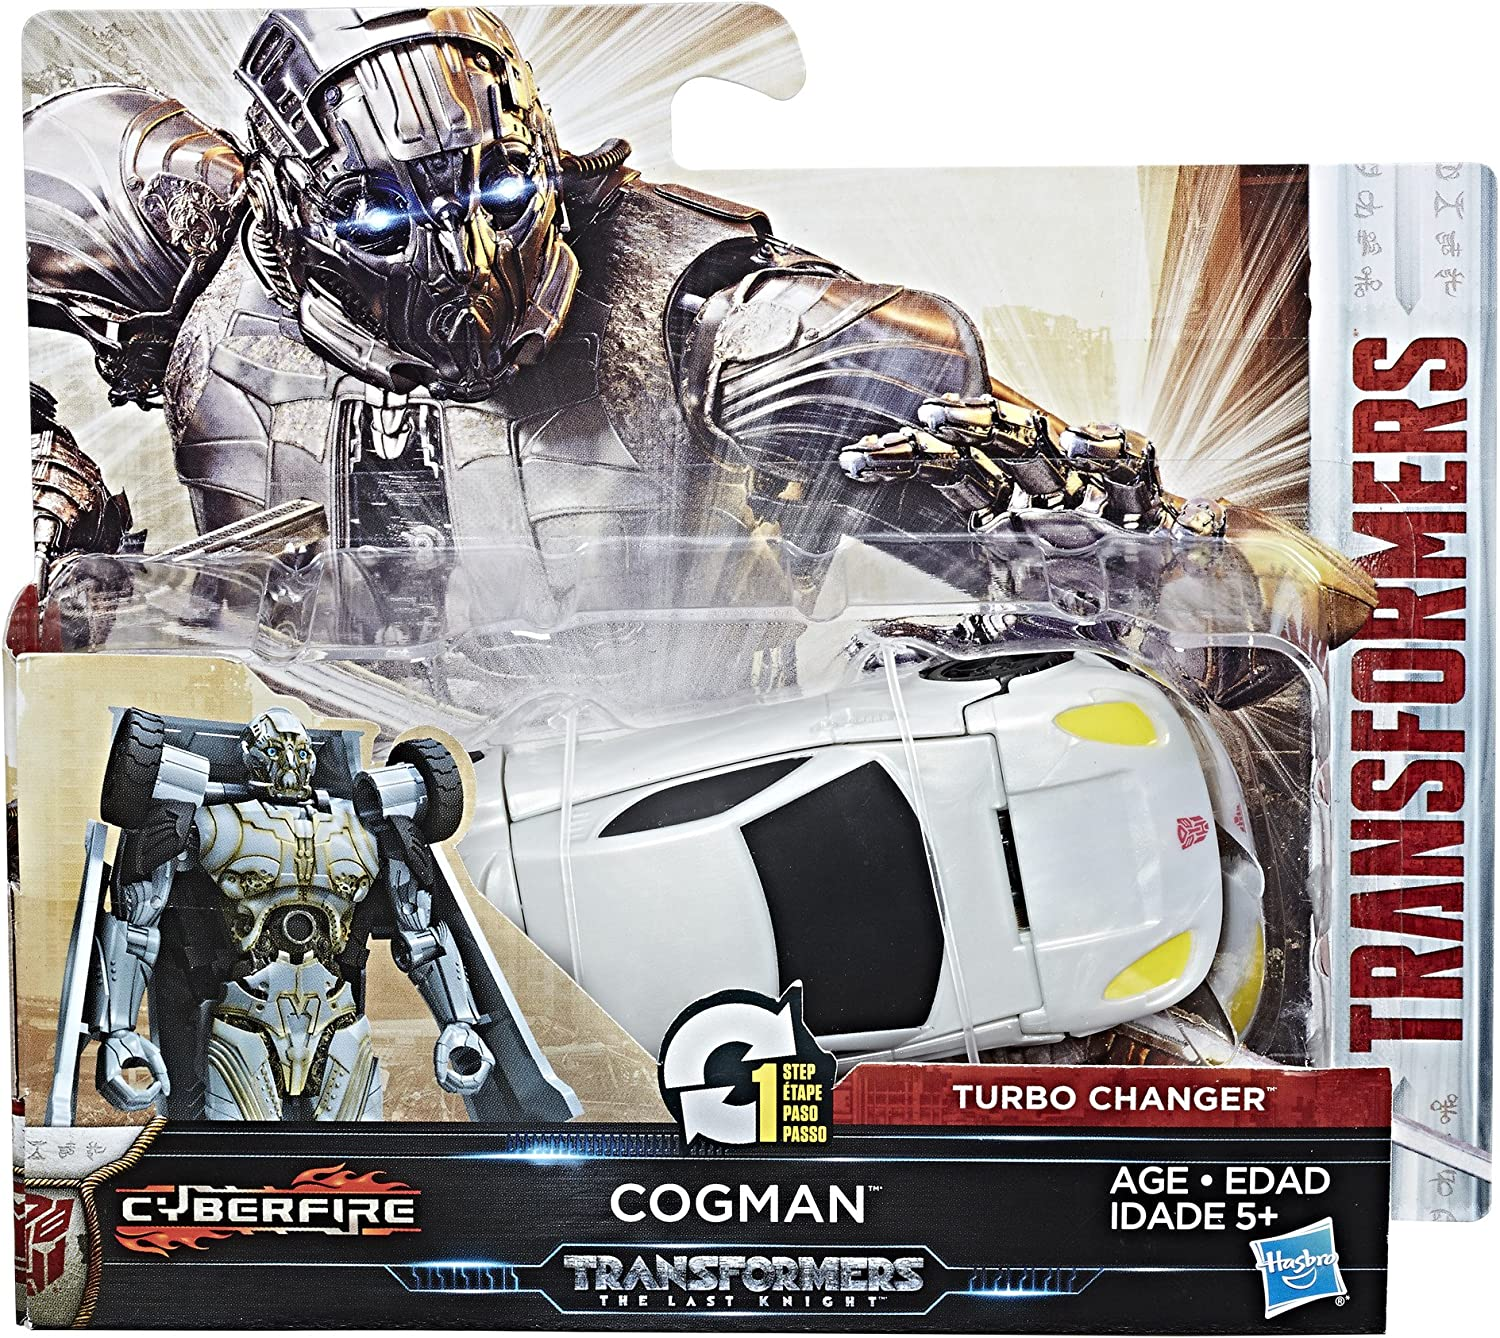 Transformers The Last Knight 1-Step Turbo Changer Figures Choice of 7 Inc Scorn